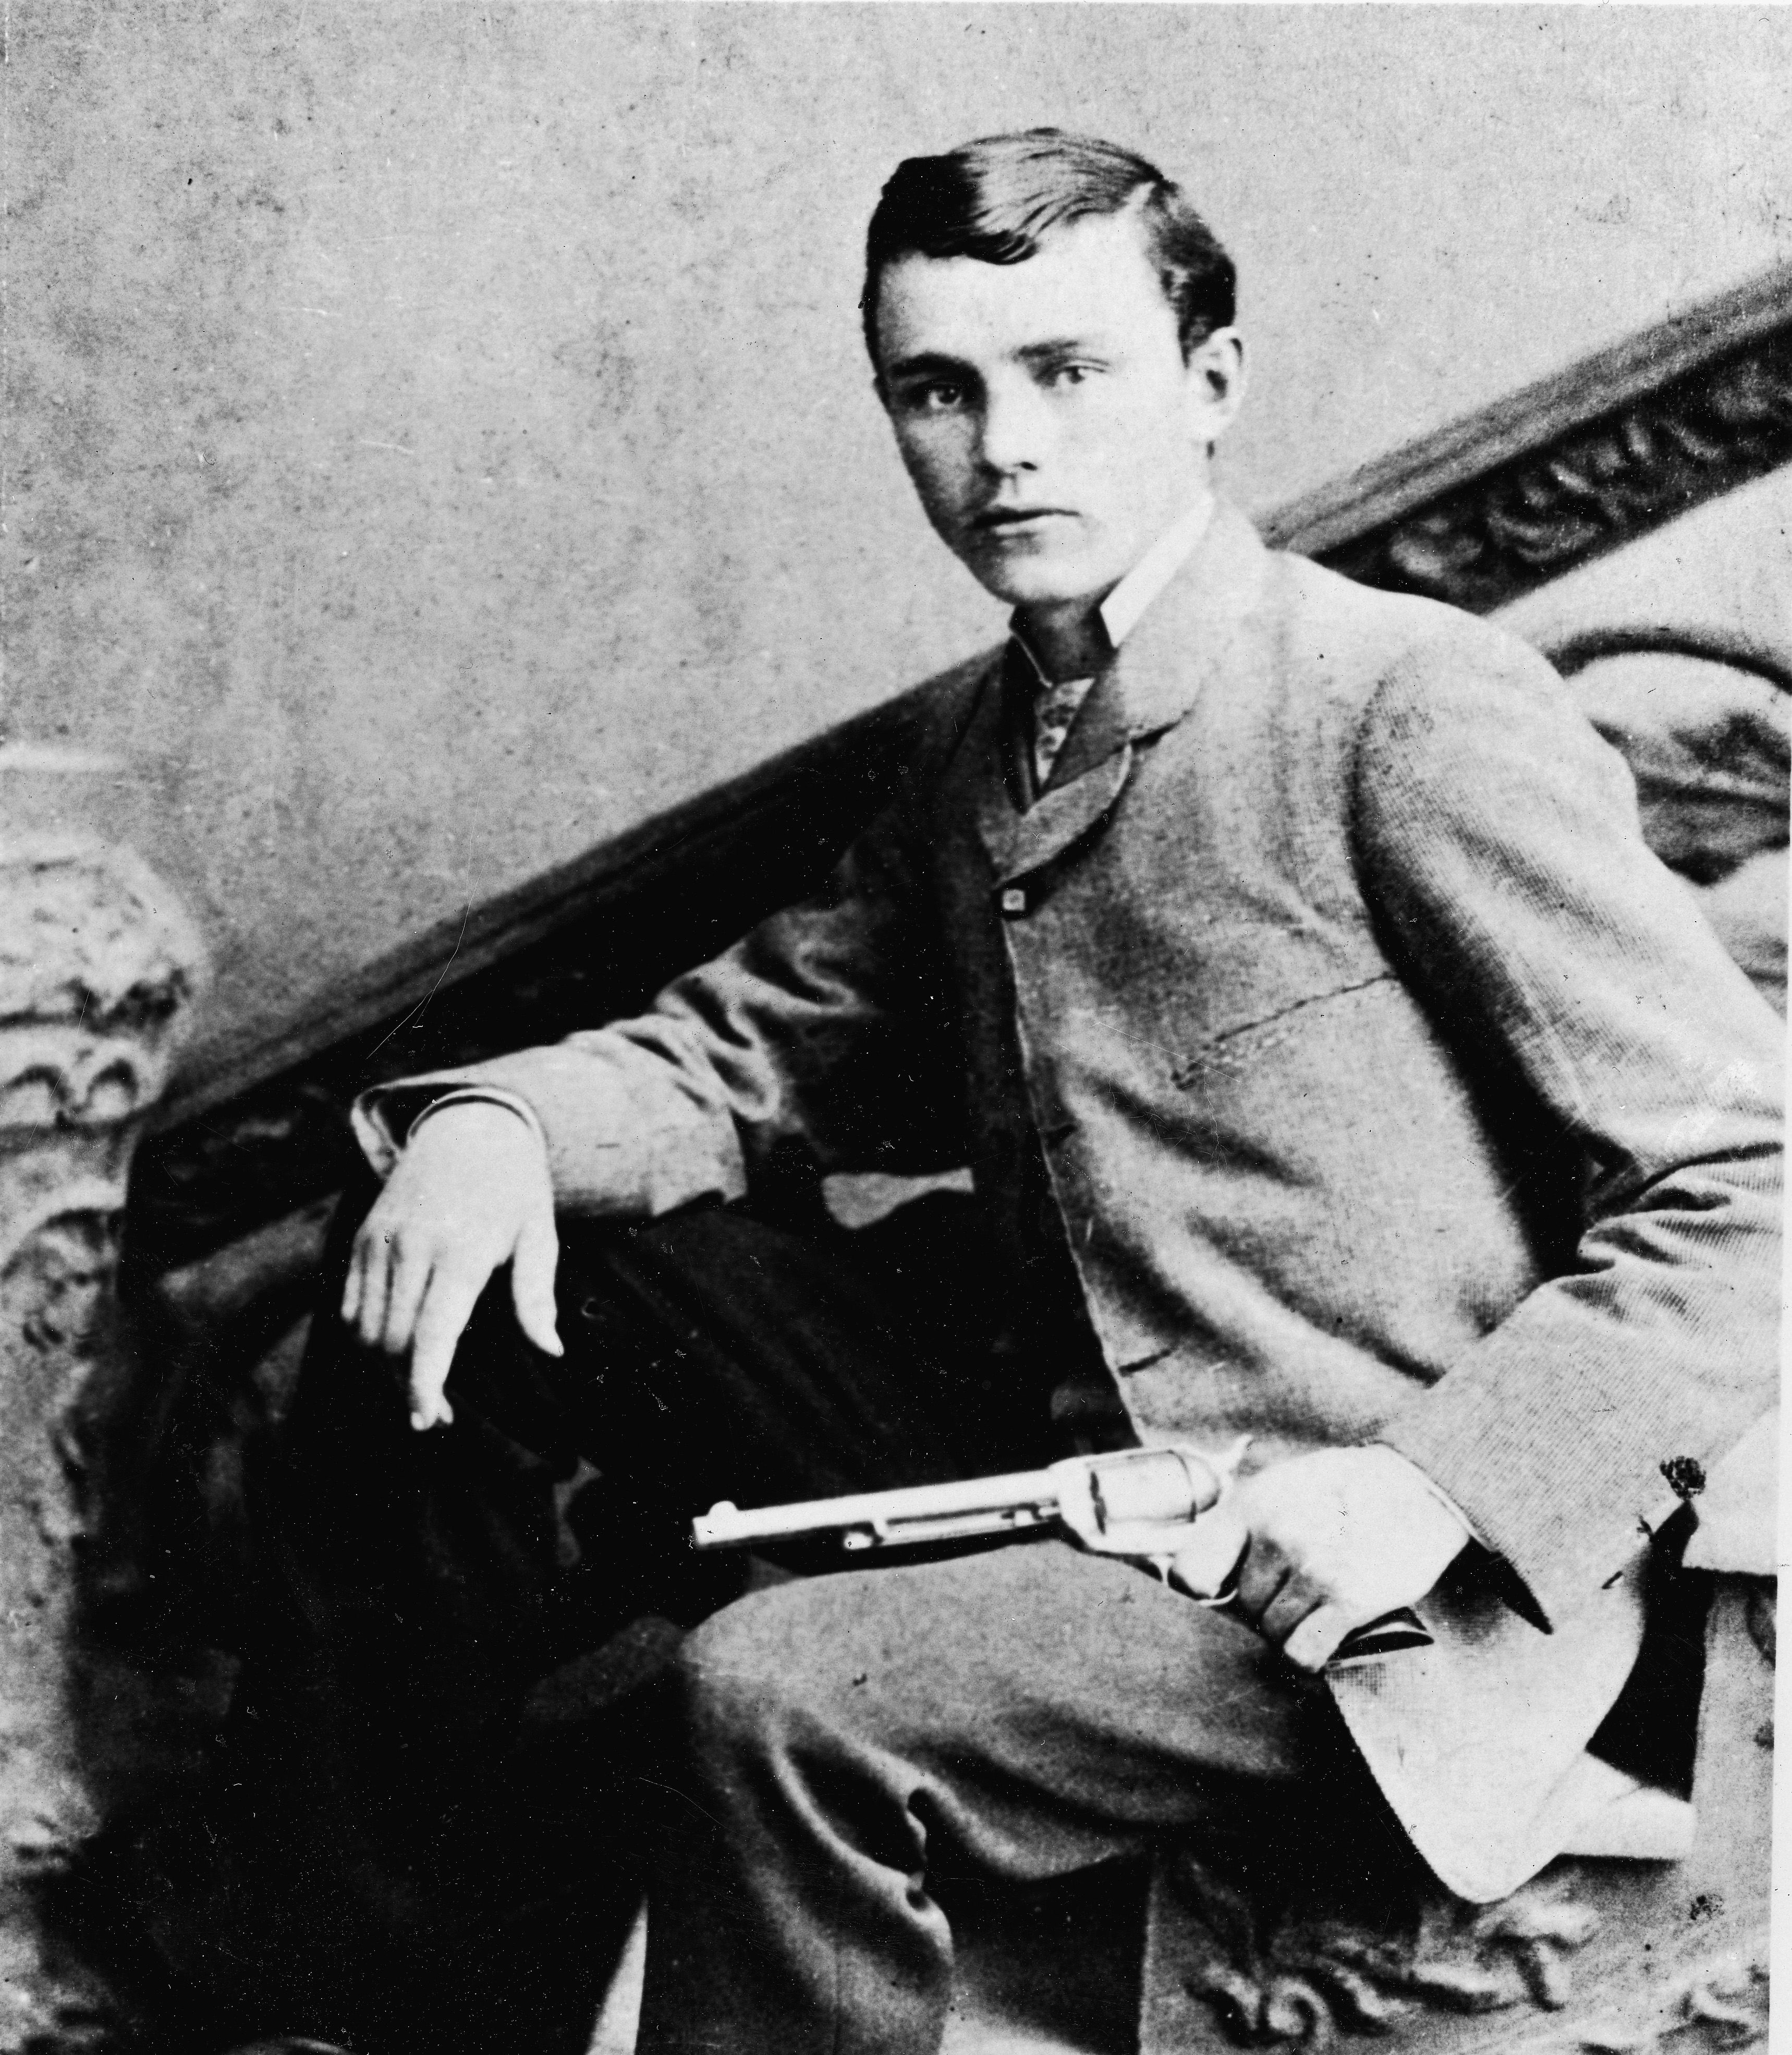 an analysis of murdering outlaw of american hero by jessie james In post civil war missouri jesse james built his reputation as a ruthless outlaw yet many sympathized with the notorious bandit, because they shared his pro-confederate sentiments james was certainly aware of.